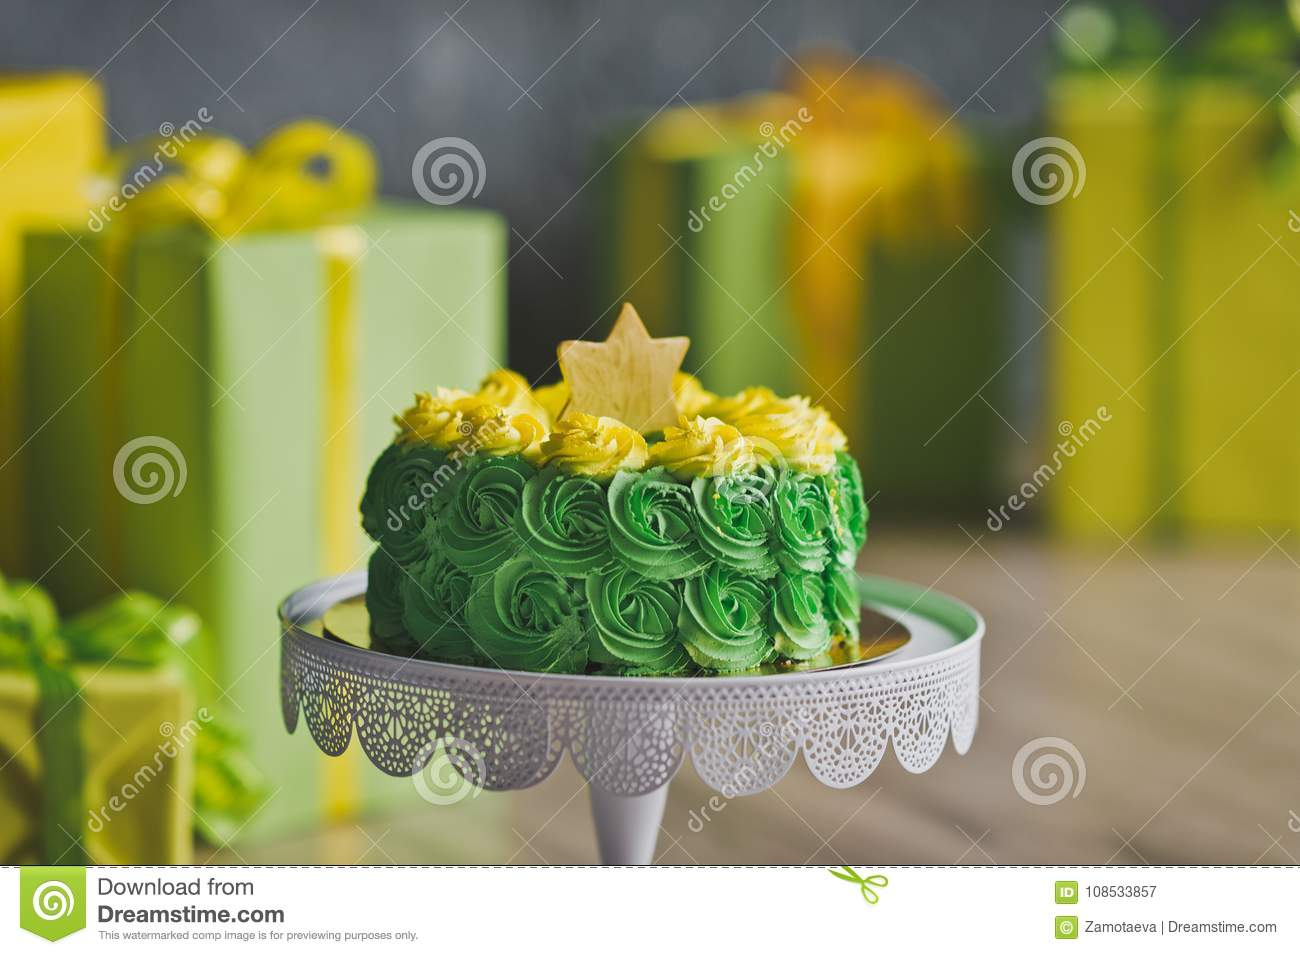 Admirable Baby Cake For A Birthday 9227 Stock Image Image Of Pink Home Personalised Birthday Cards Veneteletsinfo